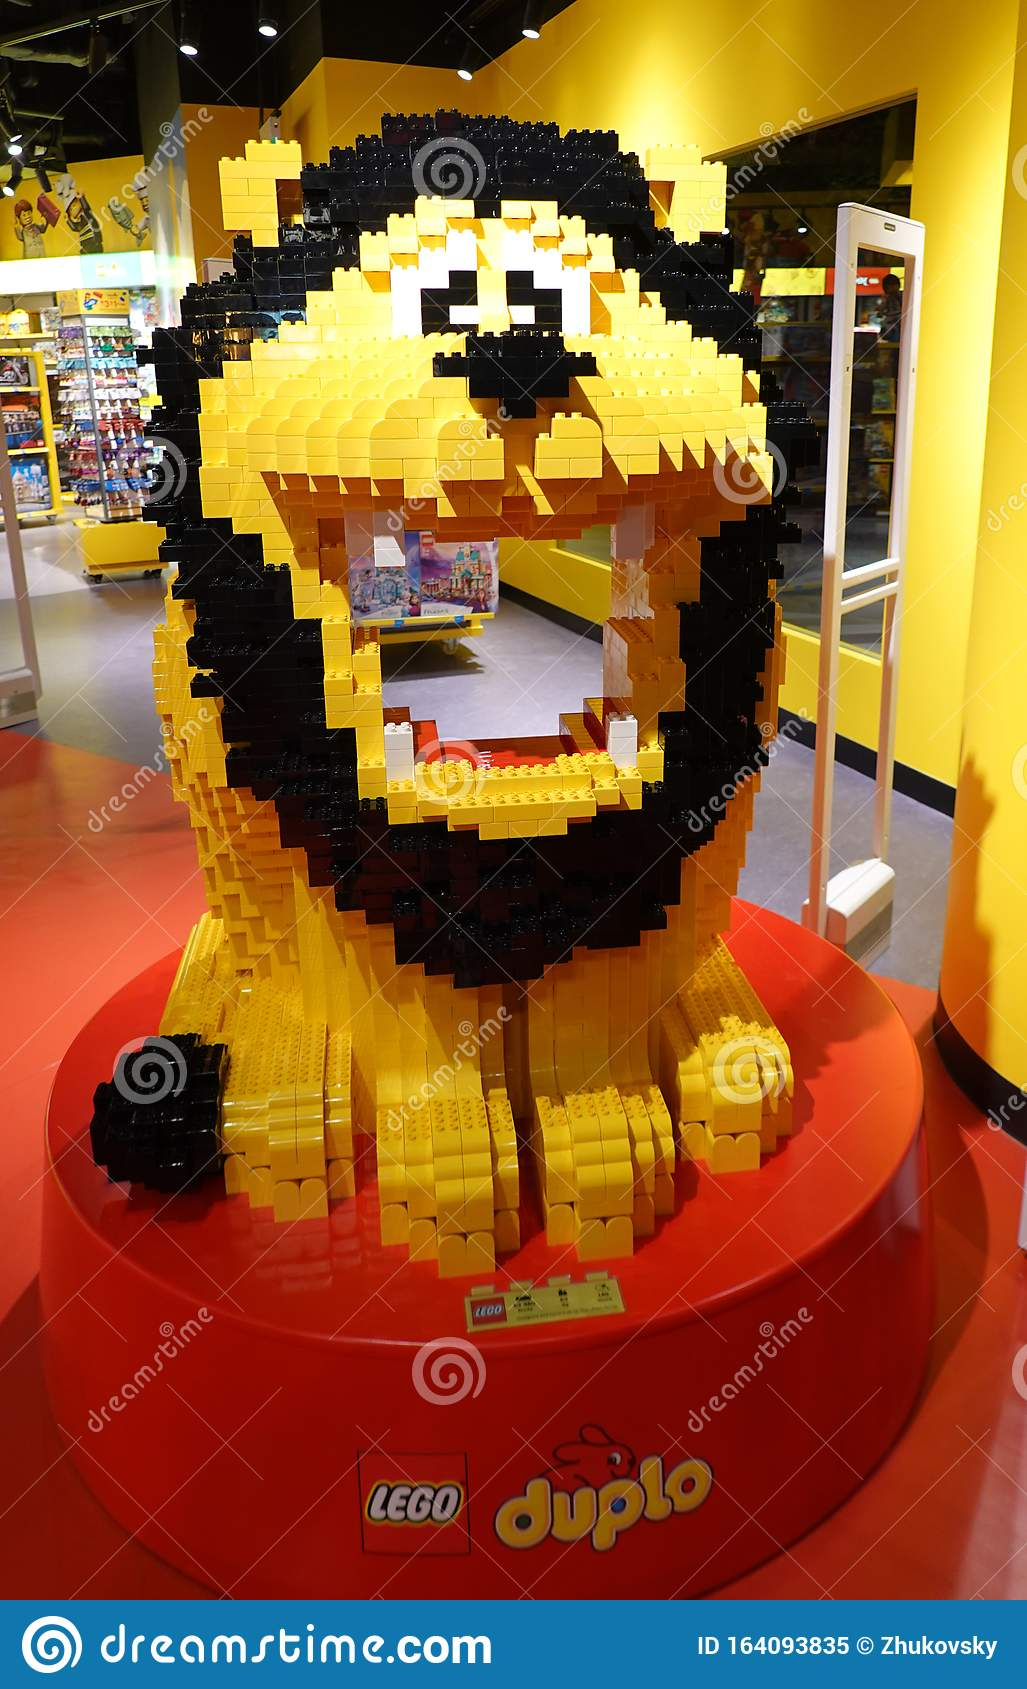 Legoland Discovery Centre In K11 Musea Shopping Mall In ...